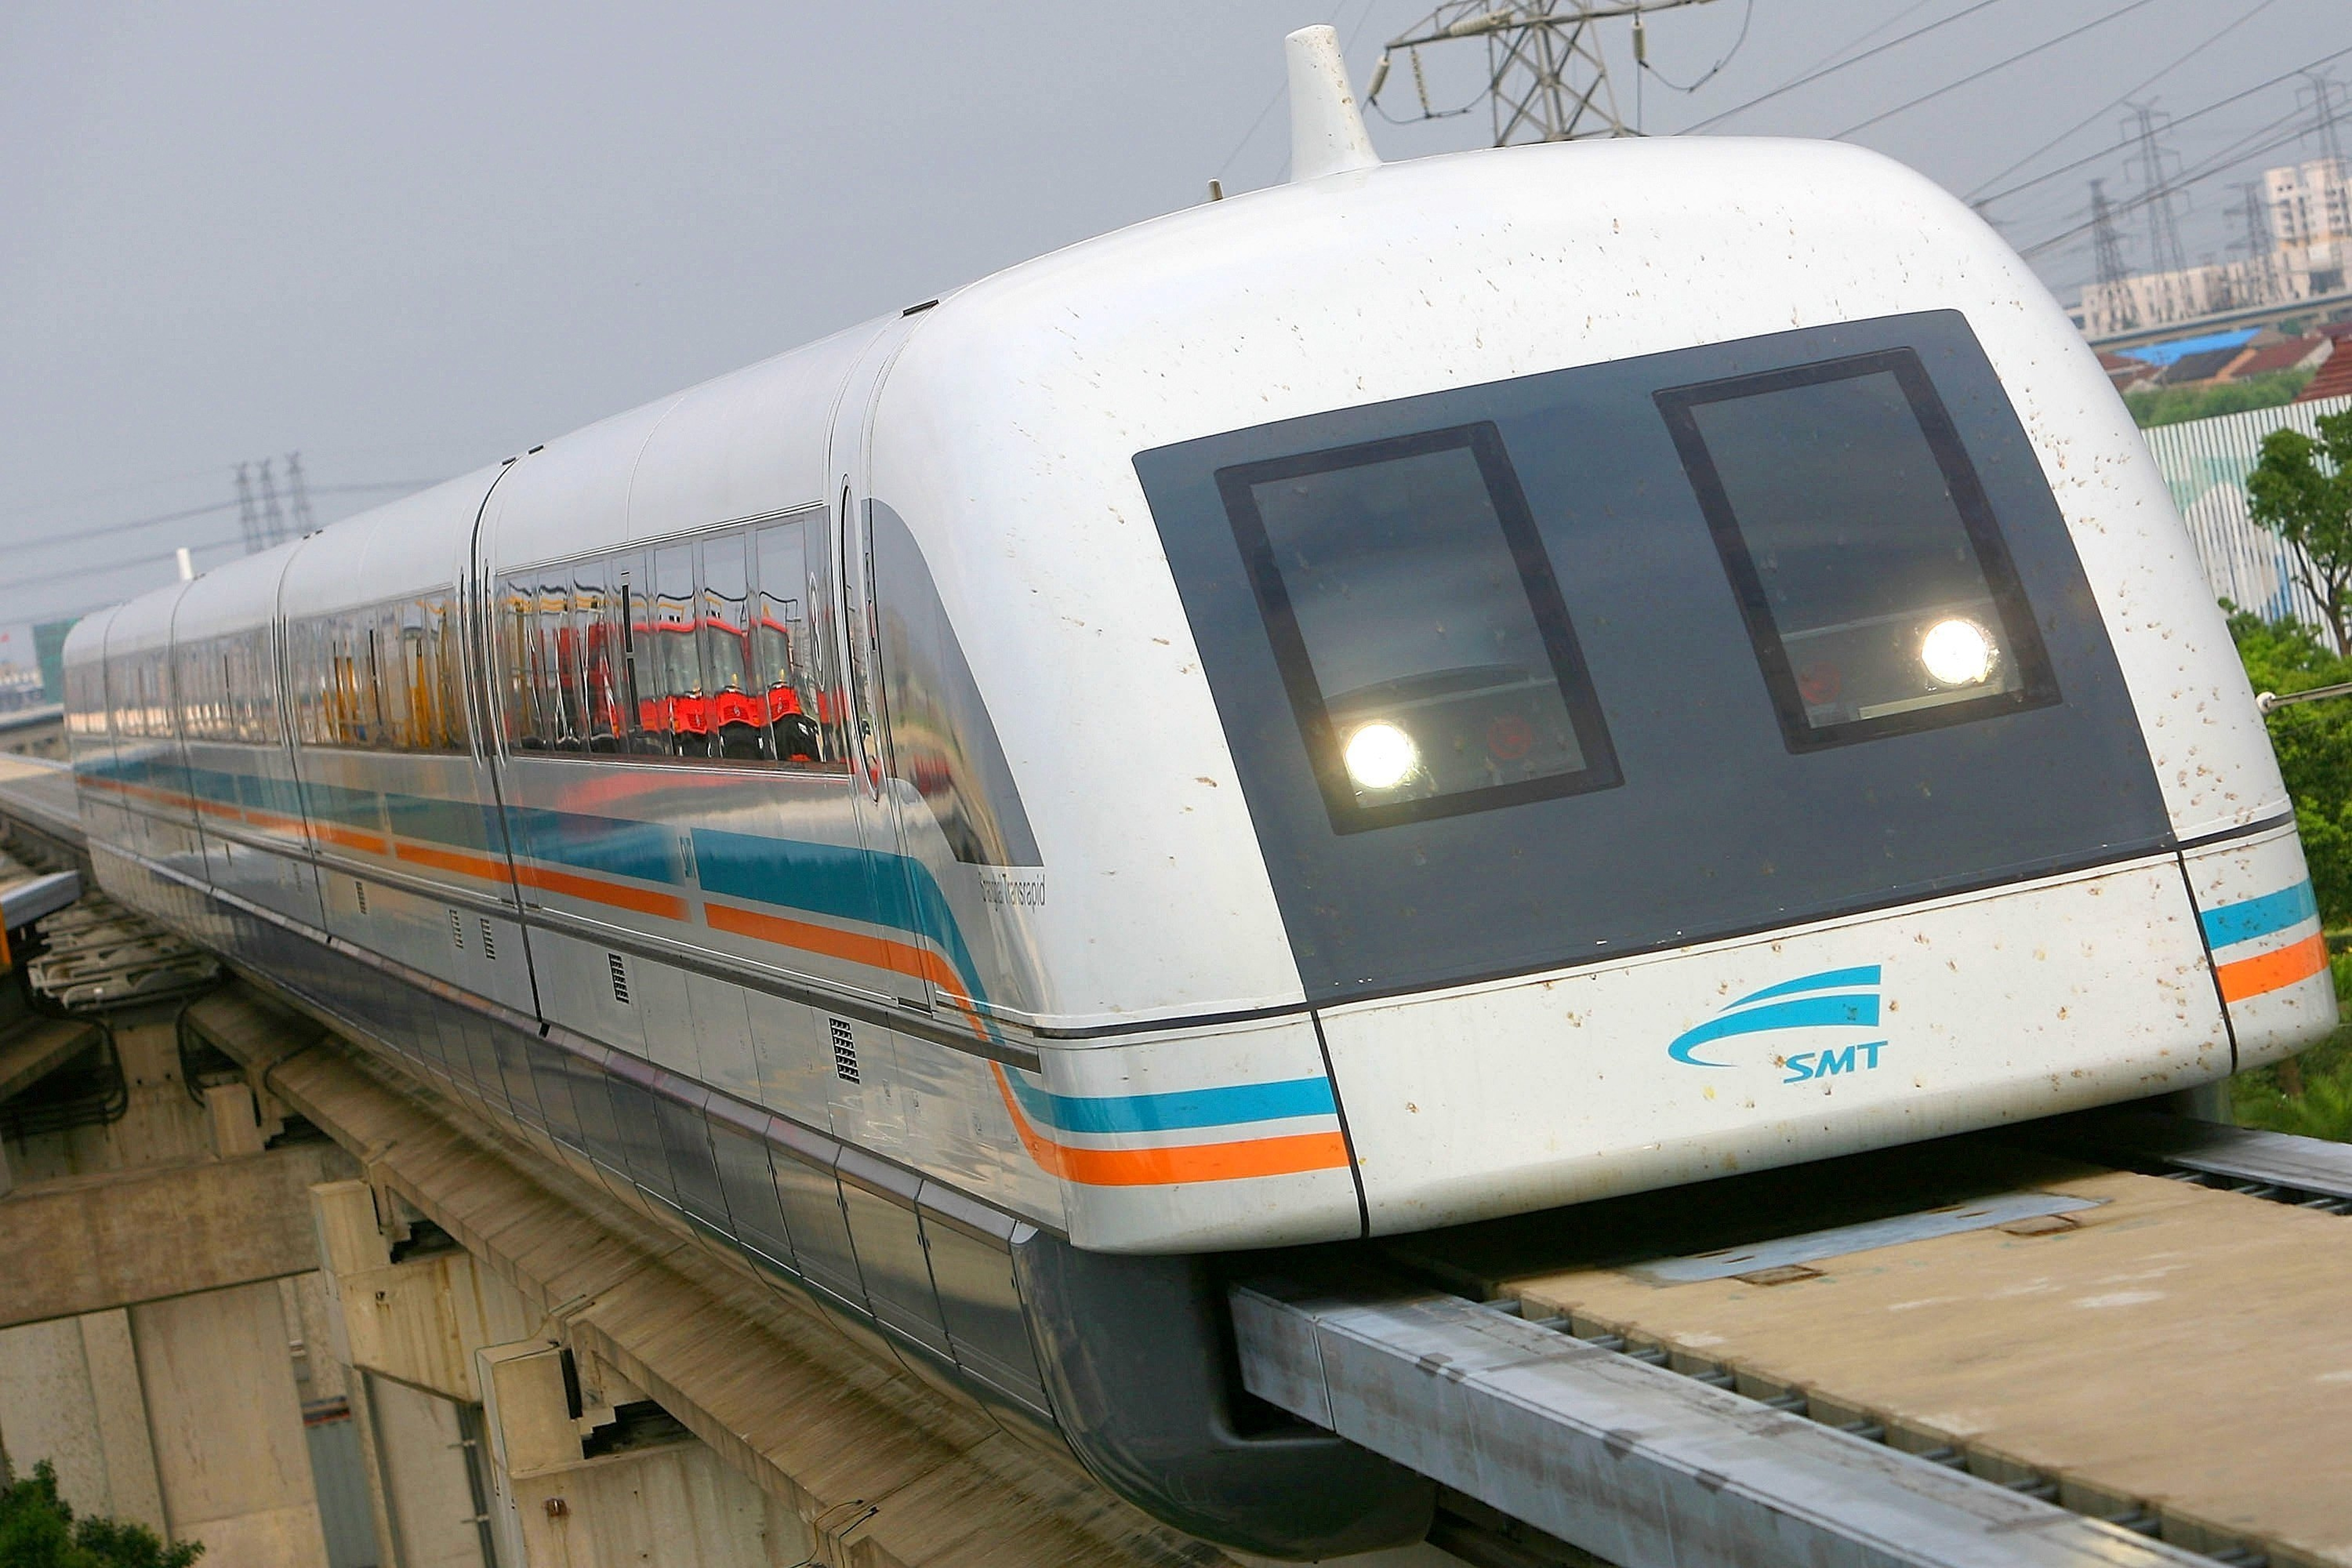 The Shanghai maglev, which runs from the airport to the city center, covers 19 miles in eight minutes.